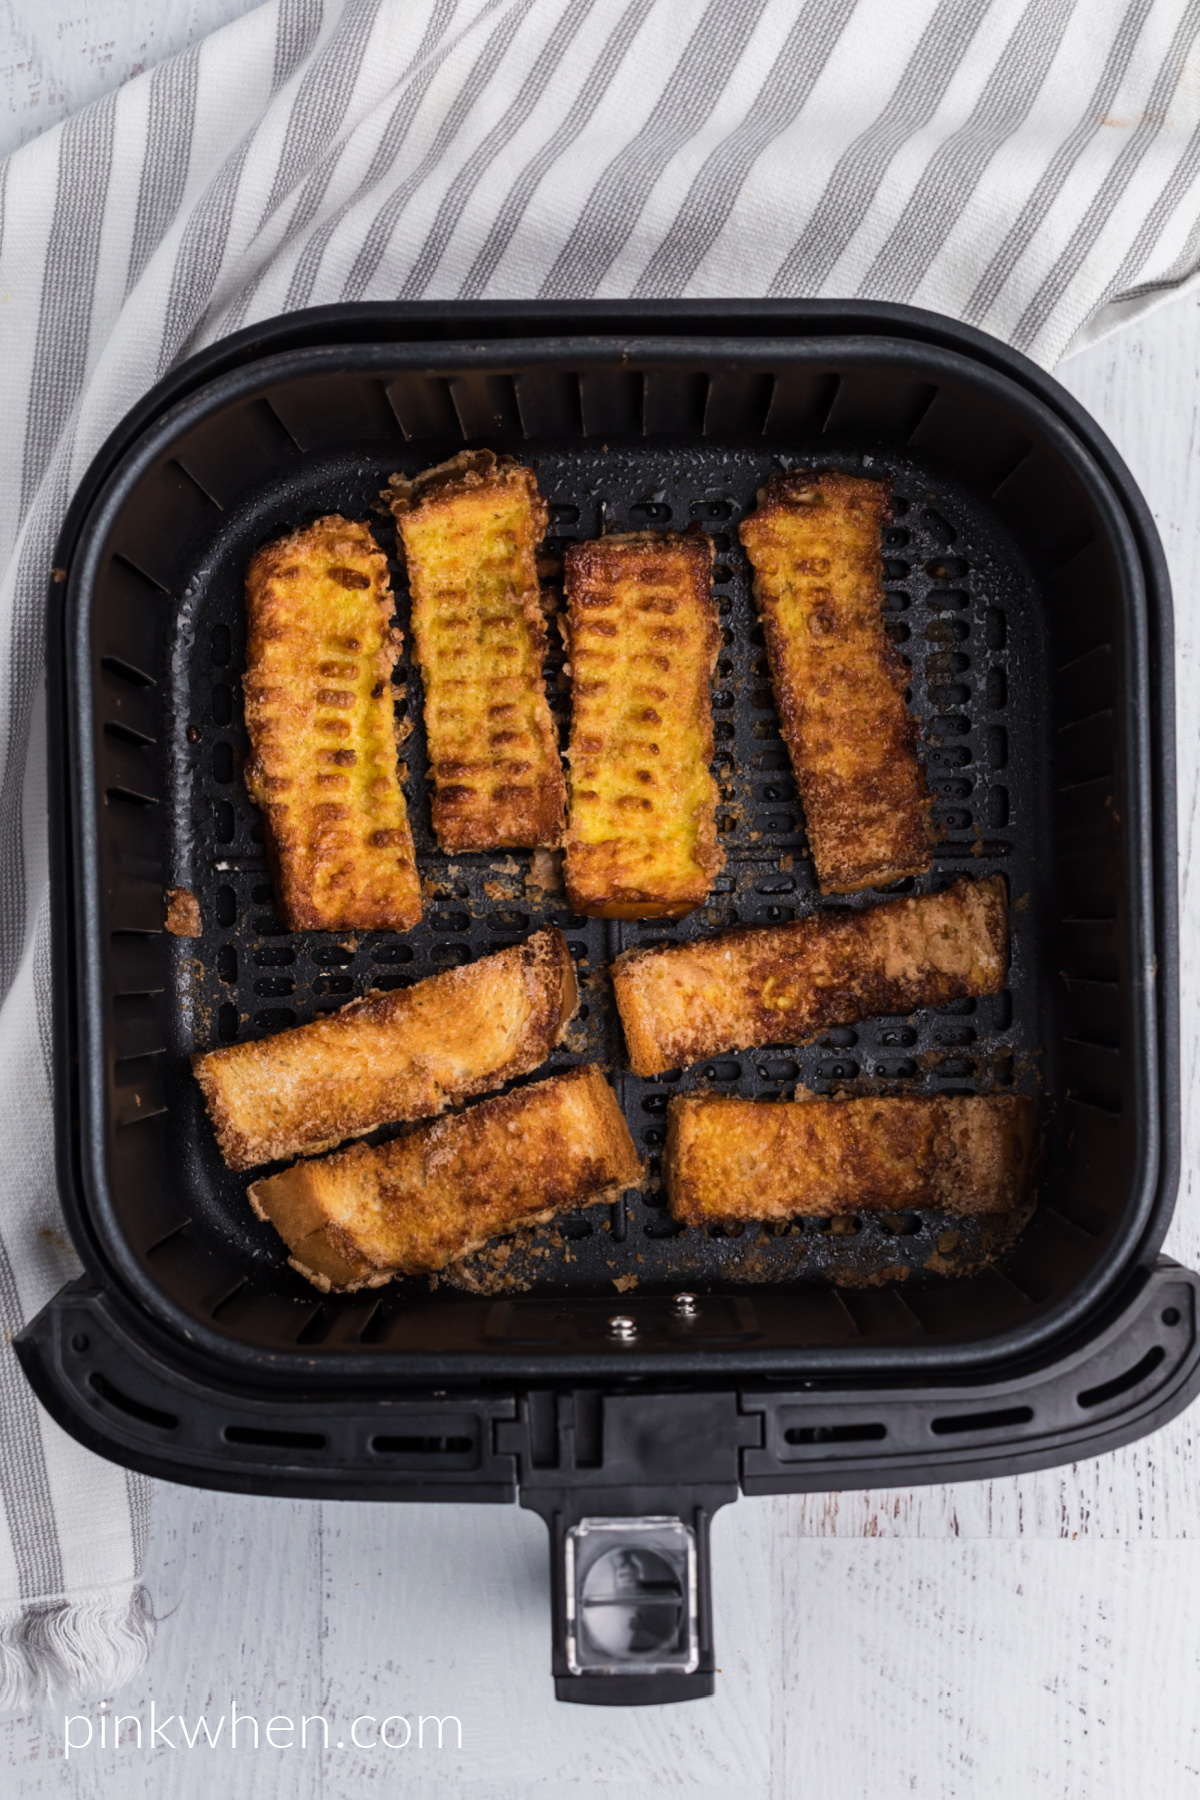 cooked french toast sticks in the air fryer basket.